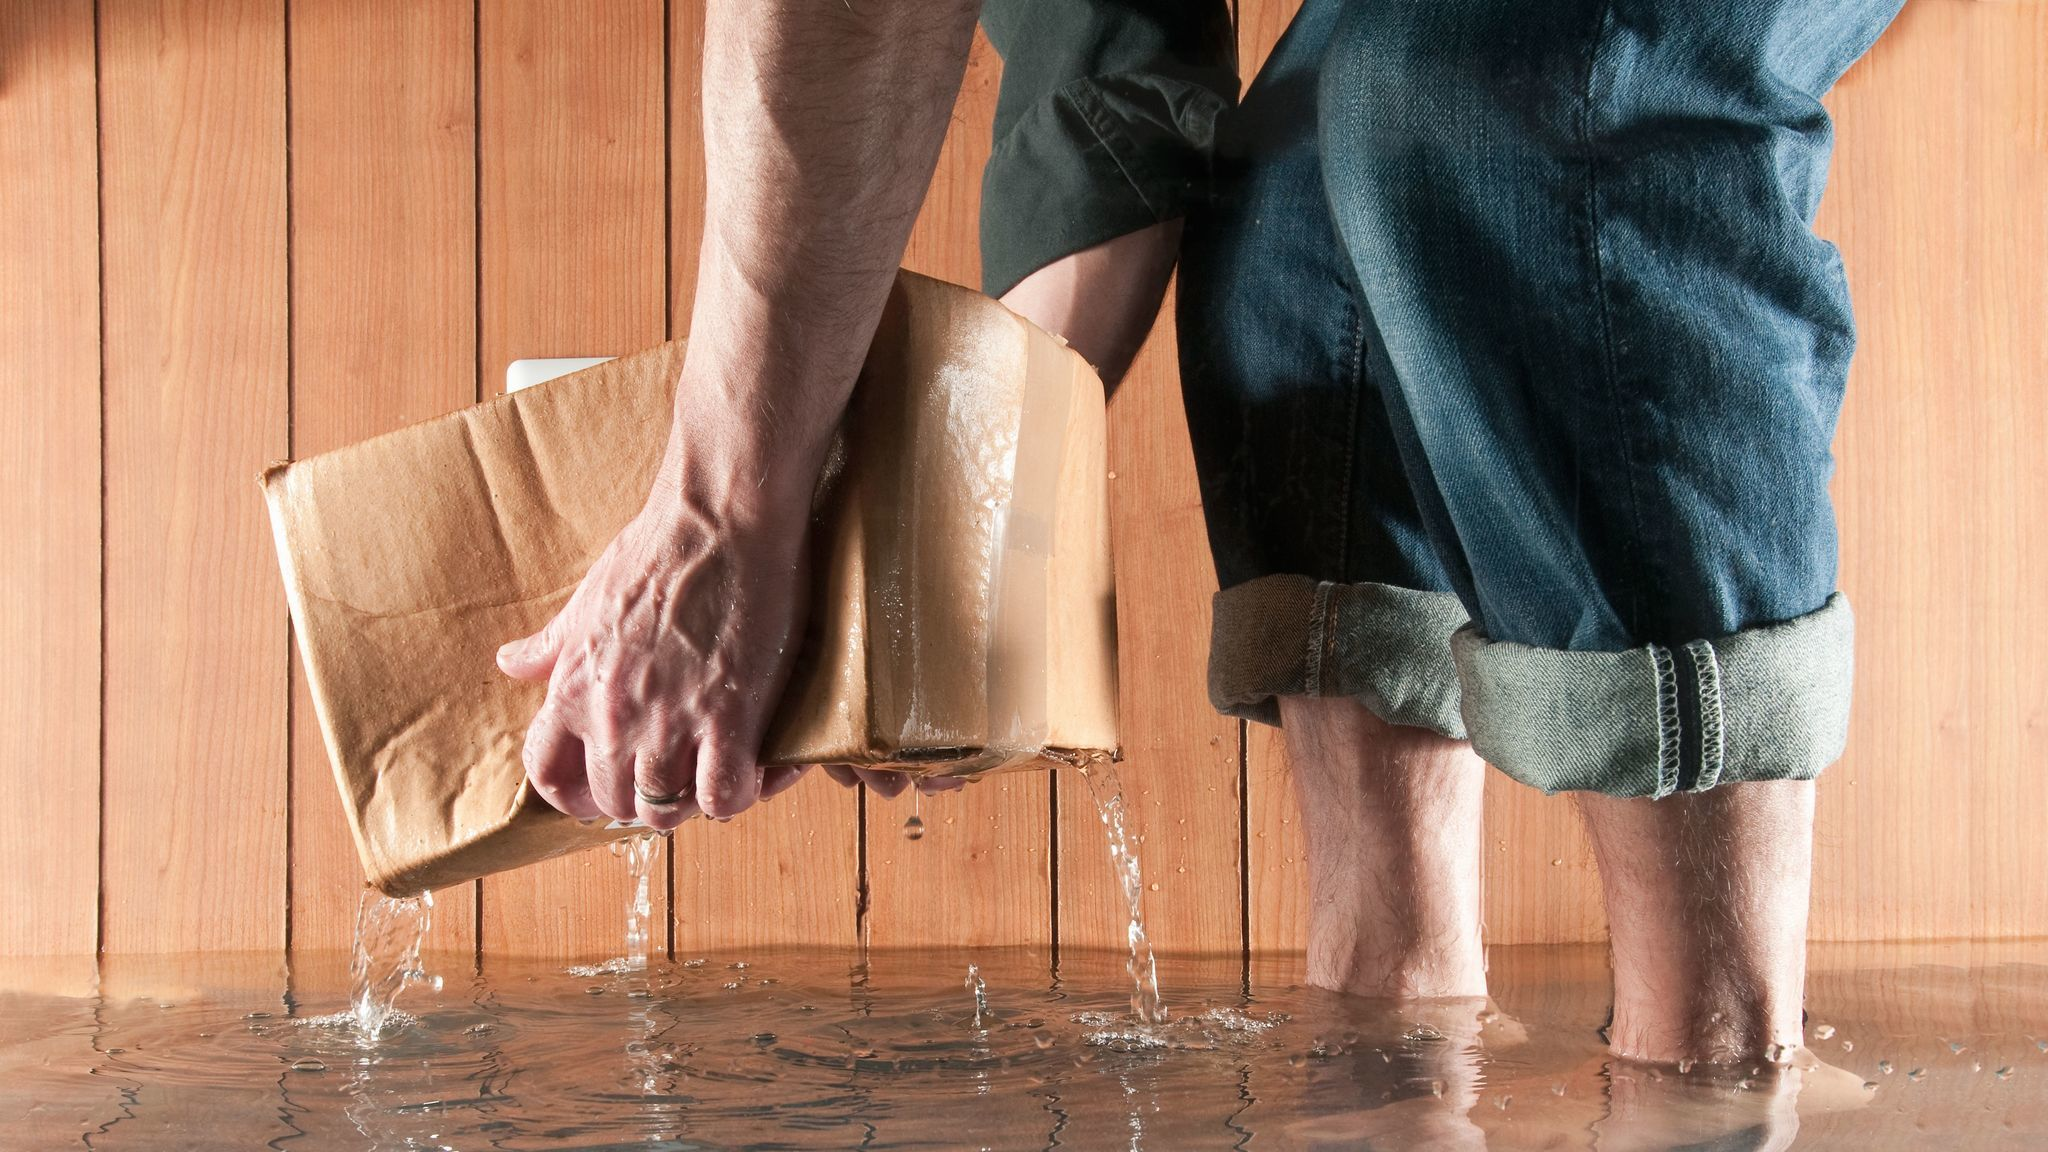 Reckoning with water damage, from flooded basements to faulty dishwashers